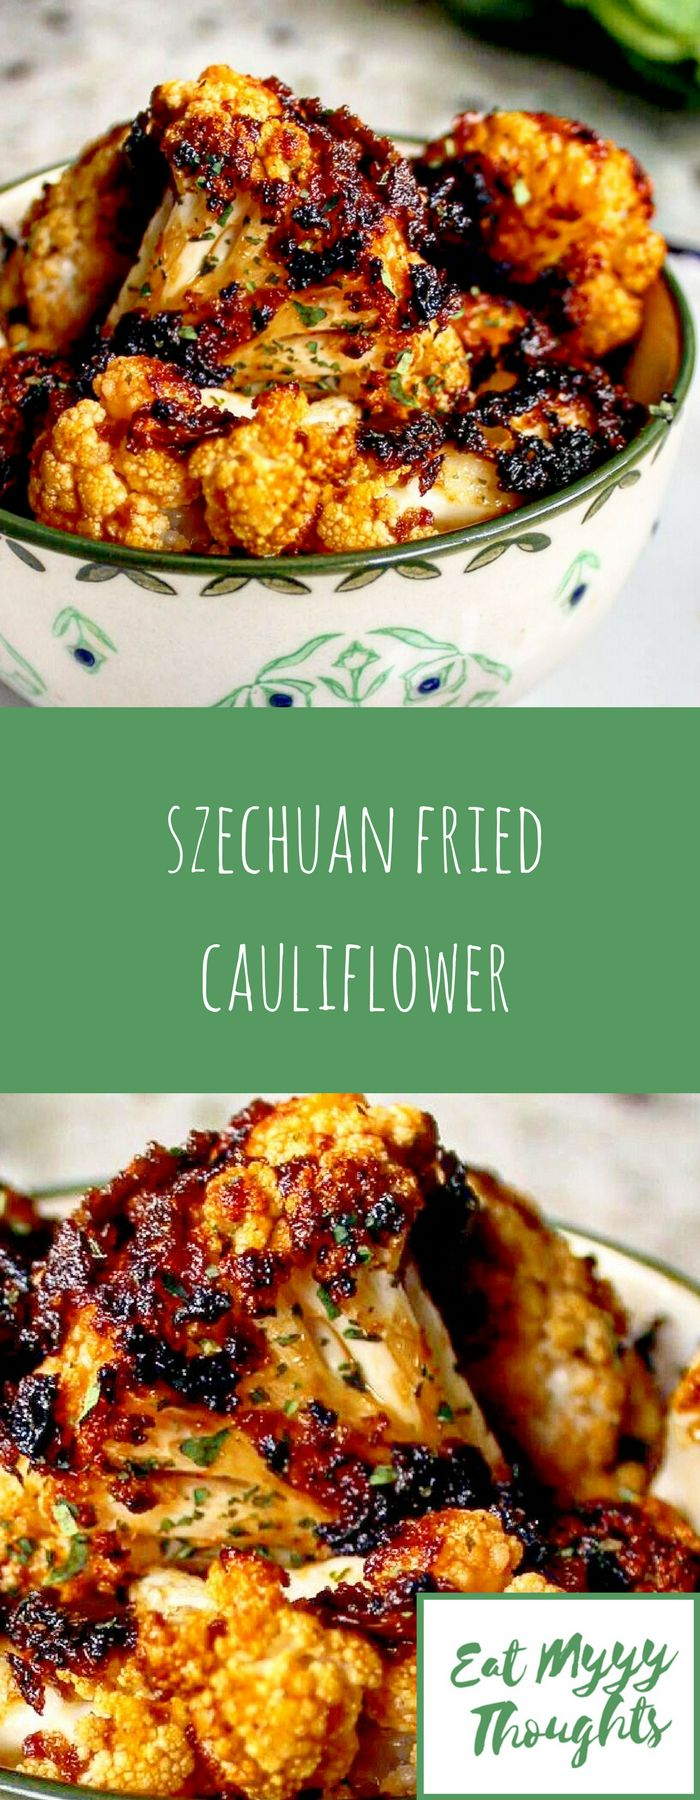 Cauliflower florets shallow fried in Szechuan spice paste - great as a snack or as a starter, especially alongside roasted cauliflower leaves.